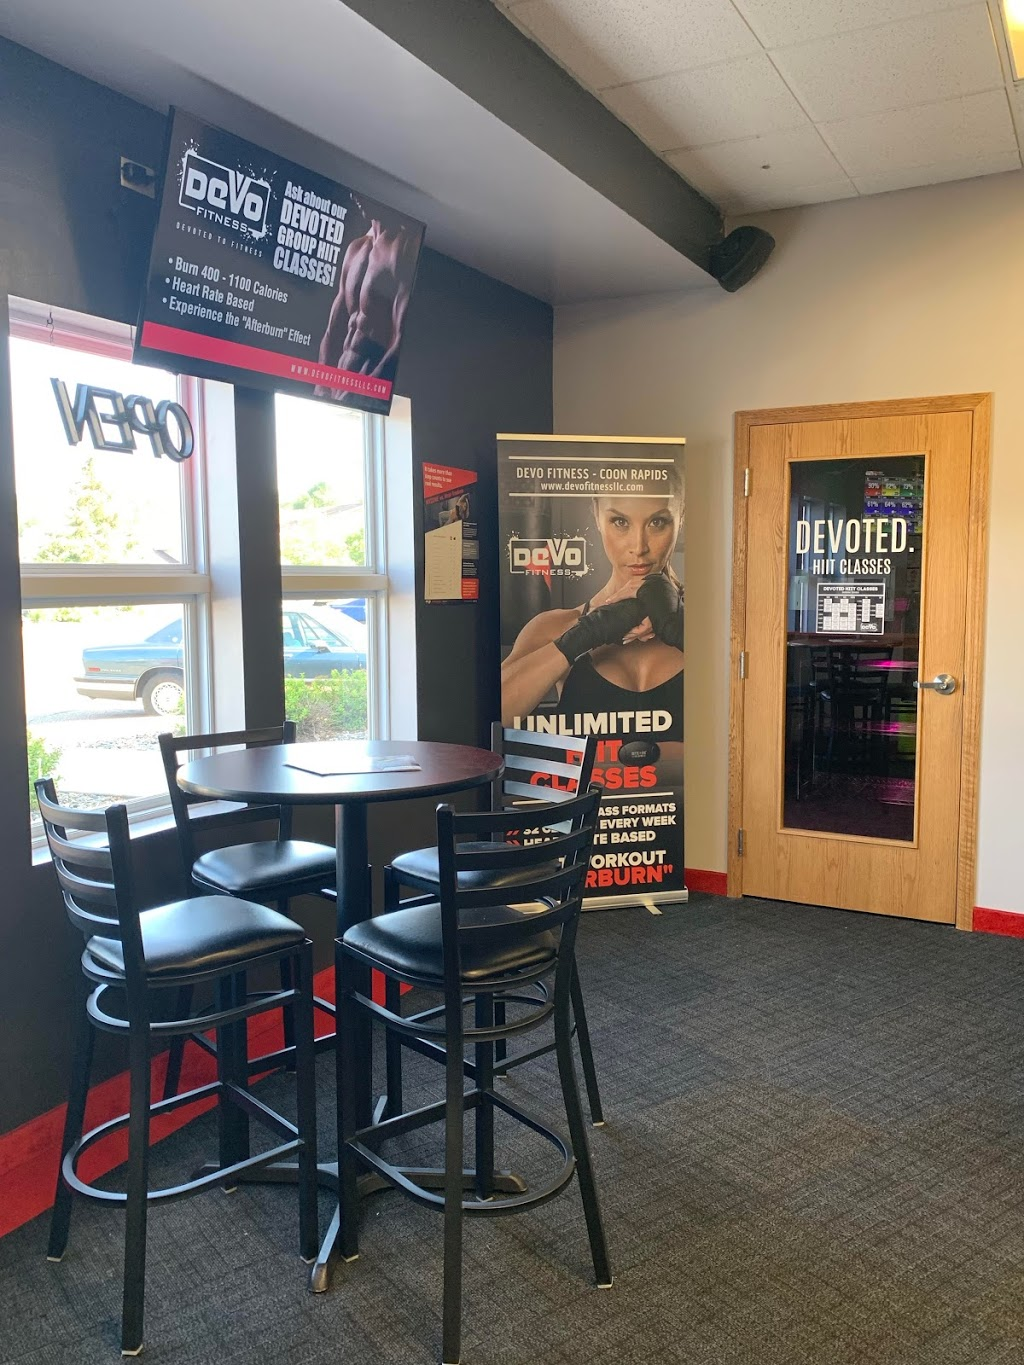 Devo Fitness - gym    Photo 5 of 8   Address: 455 99th Ave NW #170, Coon Rapids, MN 55433, USA   Phone: (763) 762-6914